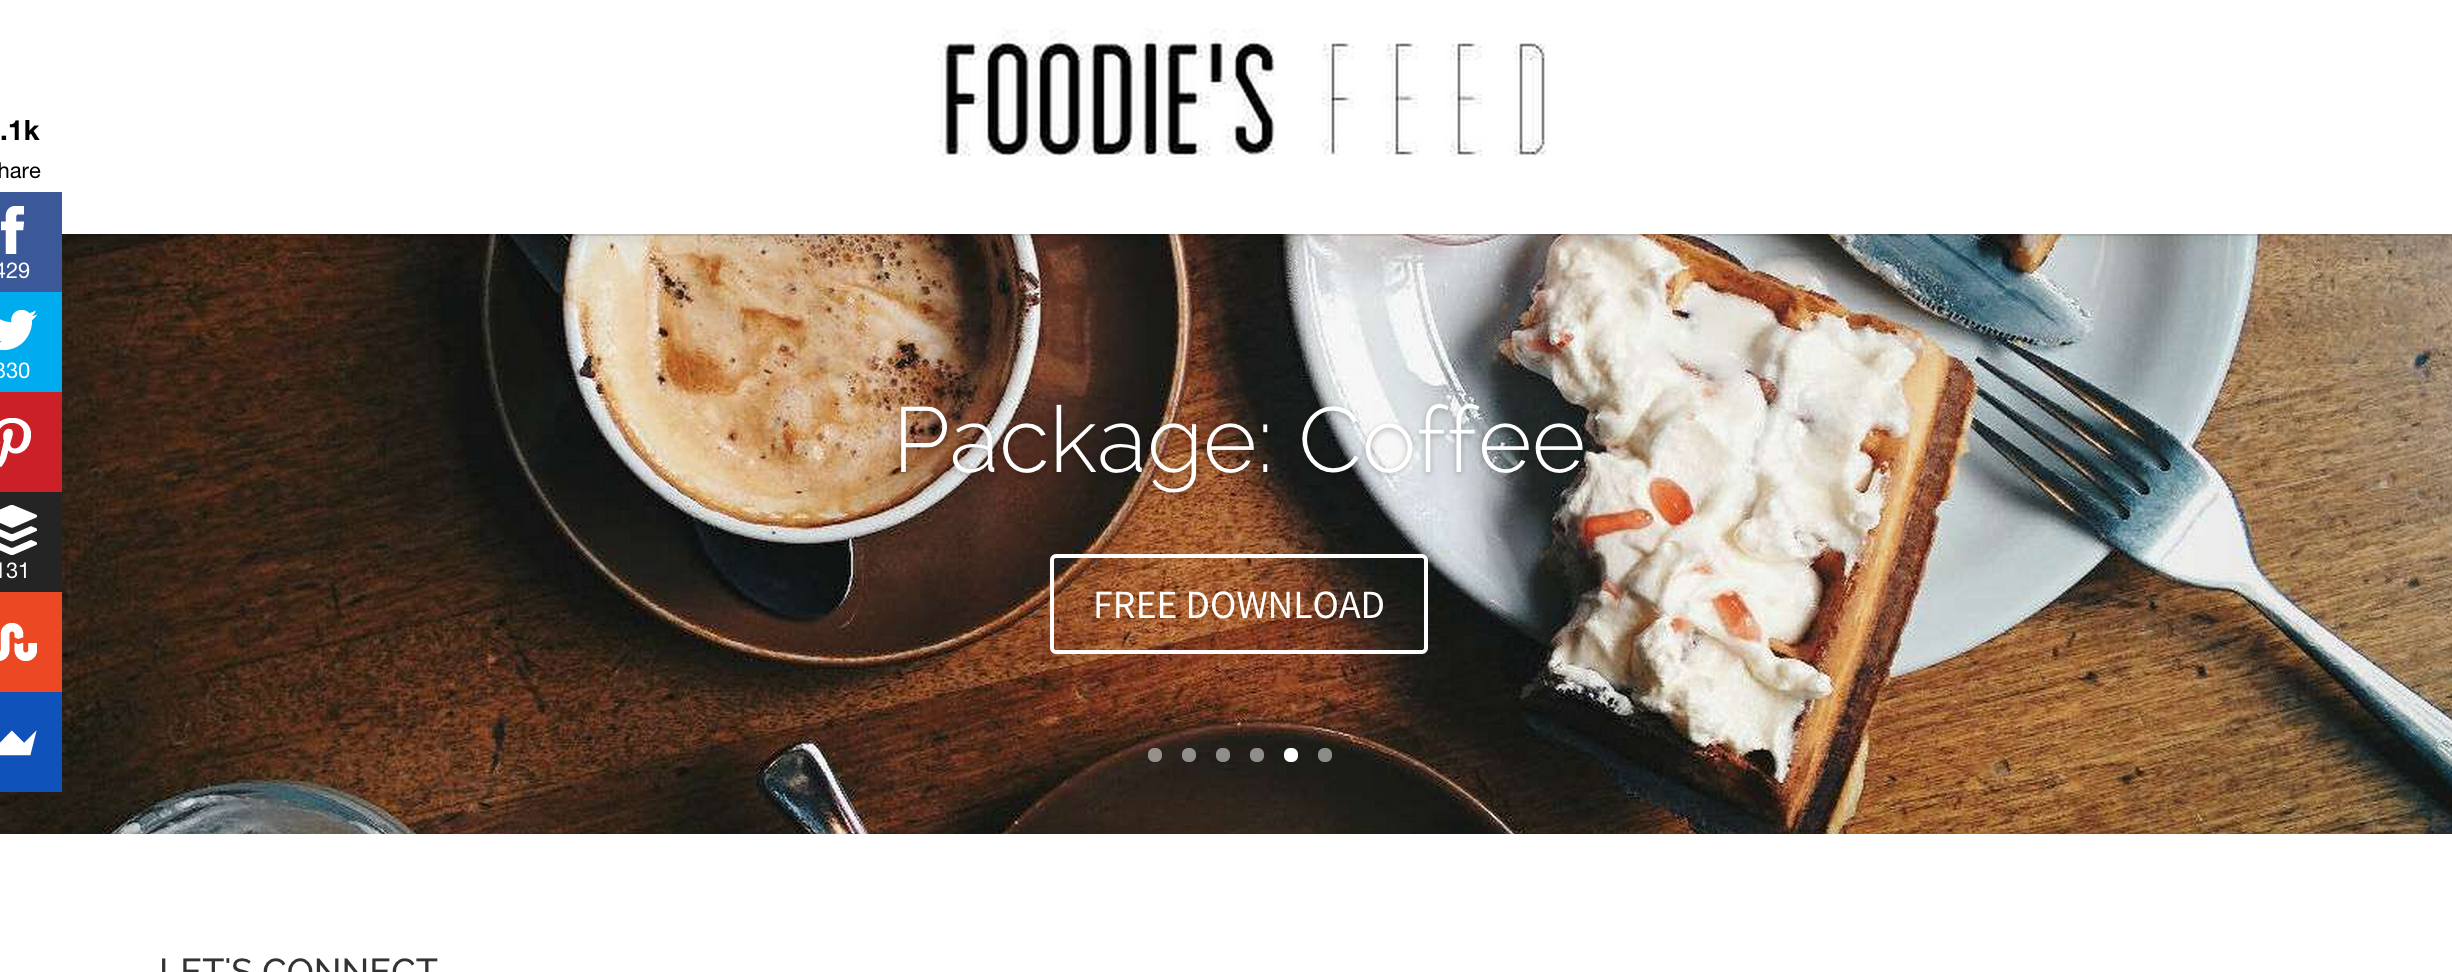 foodiesfeed.com